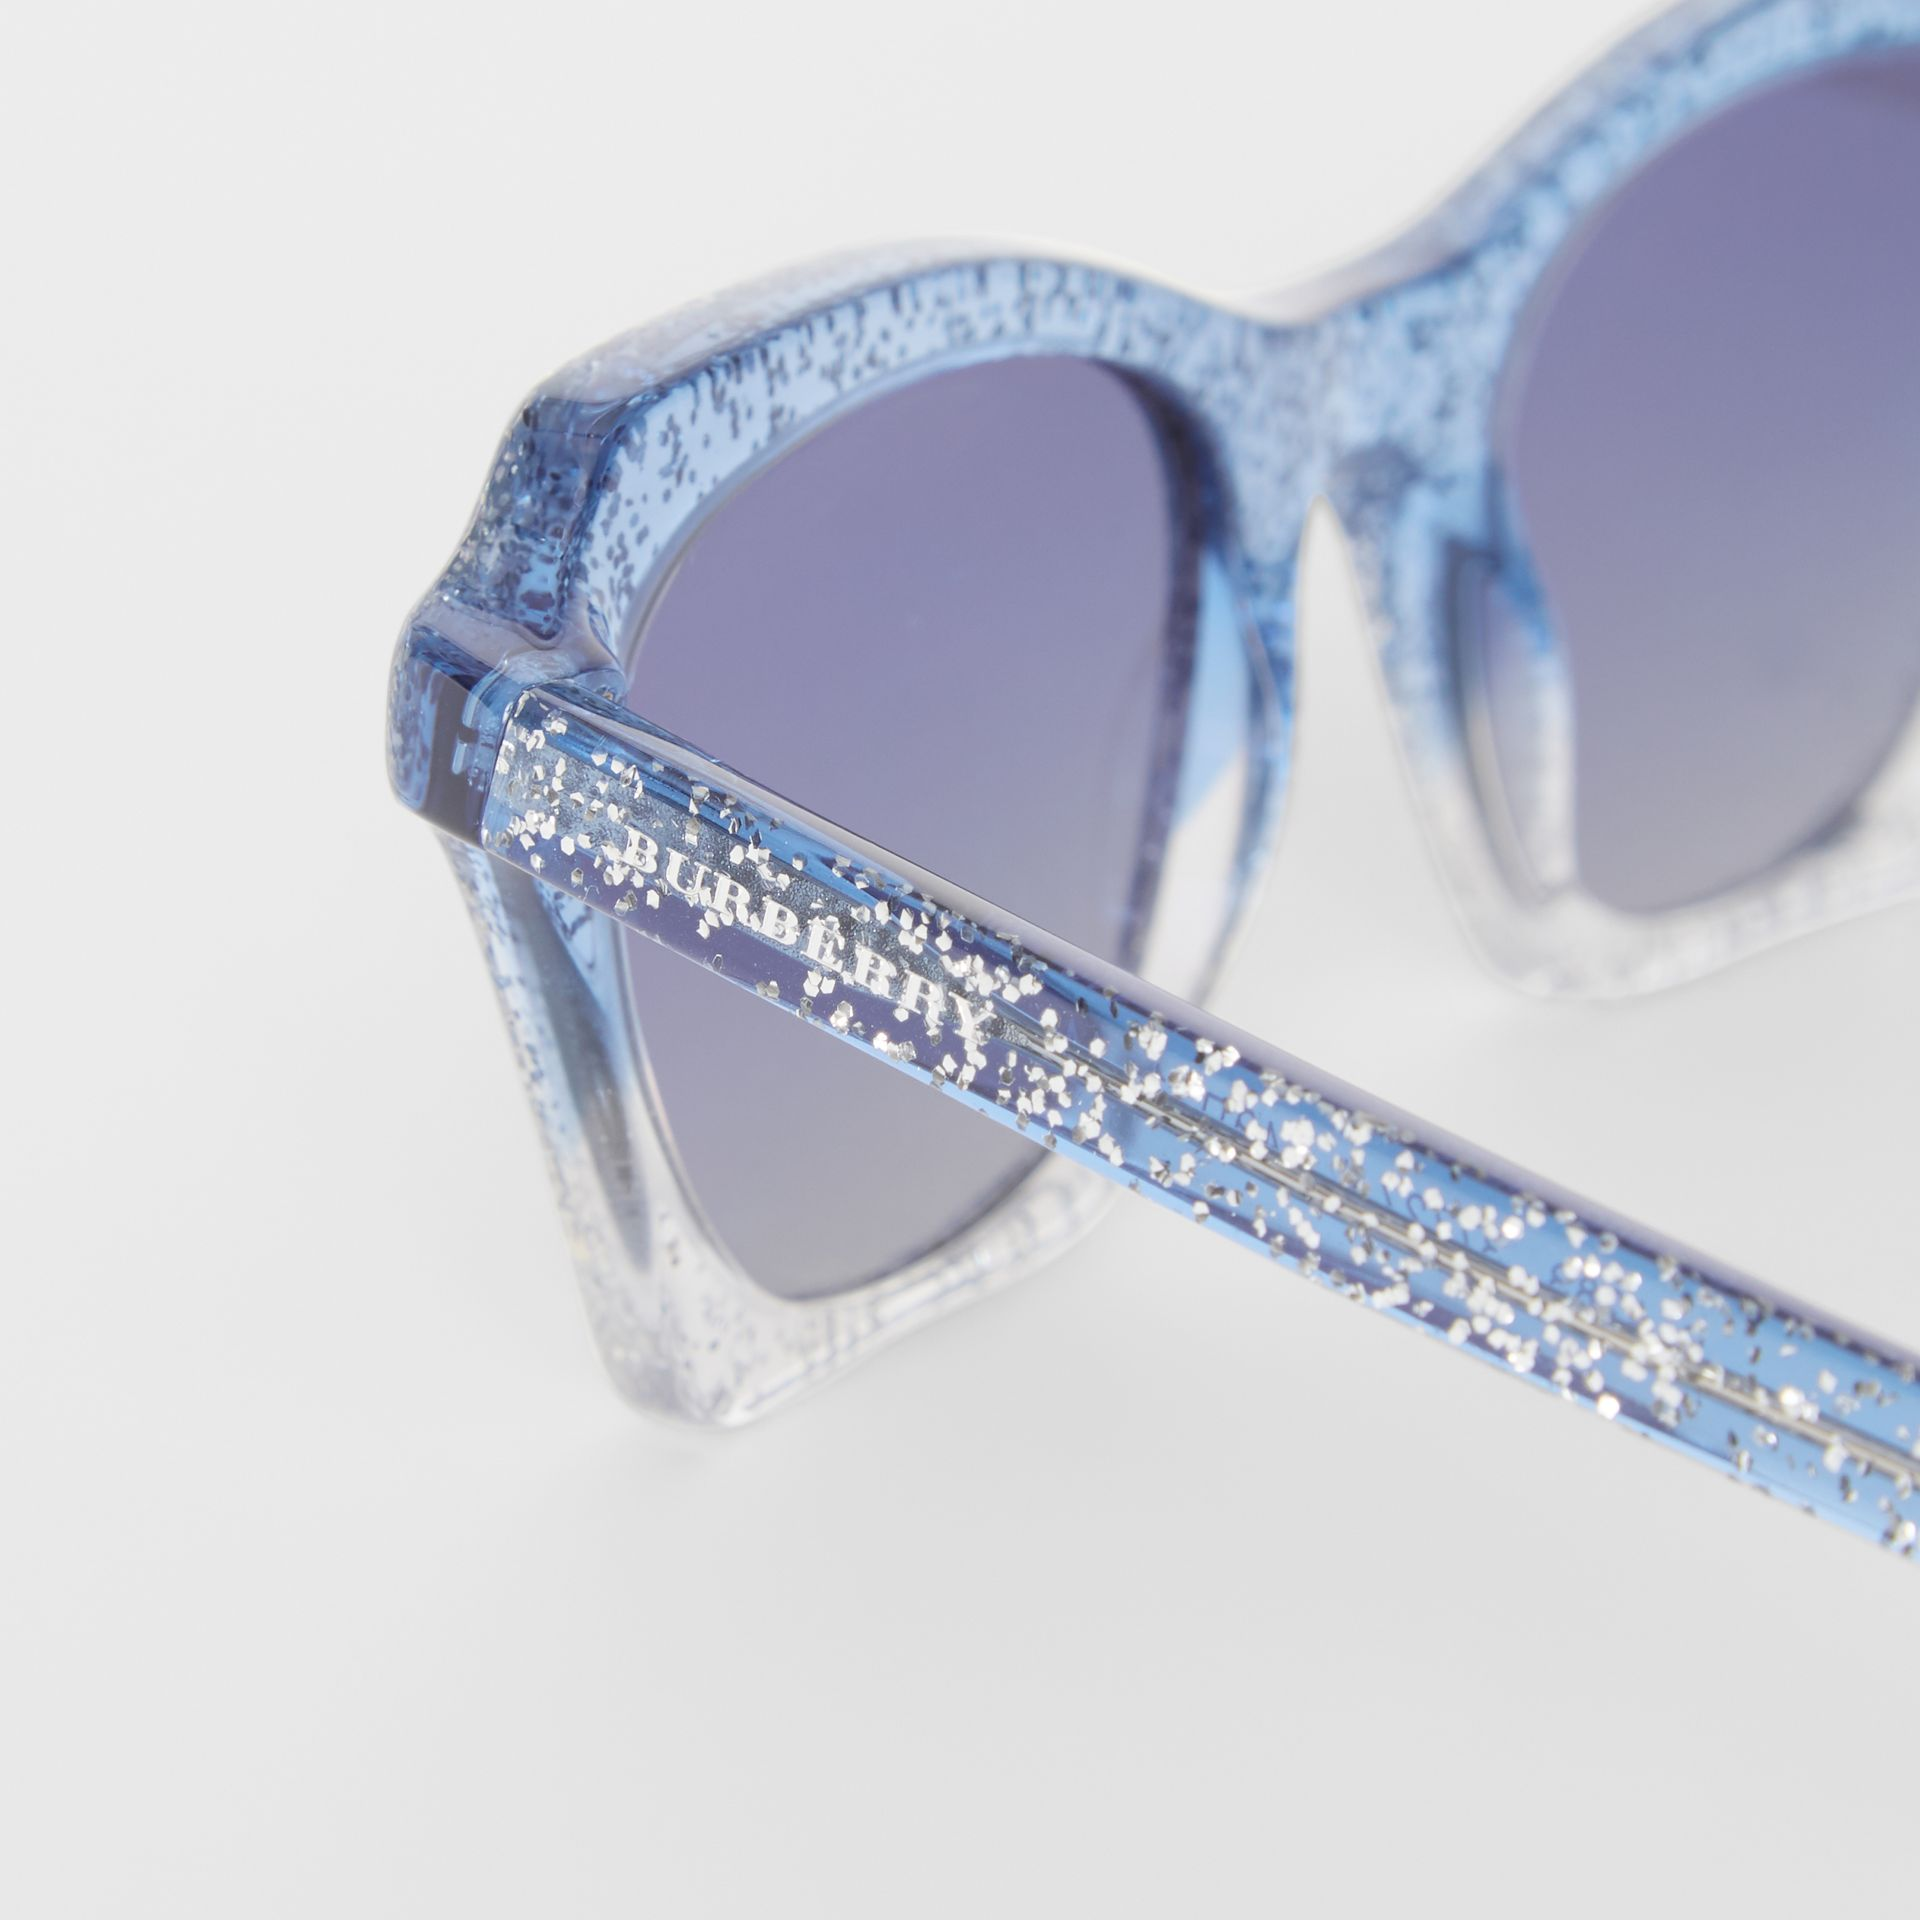 Butterfly Frame Sunglasses in Blue - Women | Burberry - gallery image 1